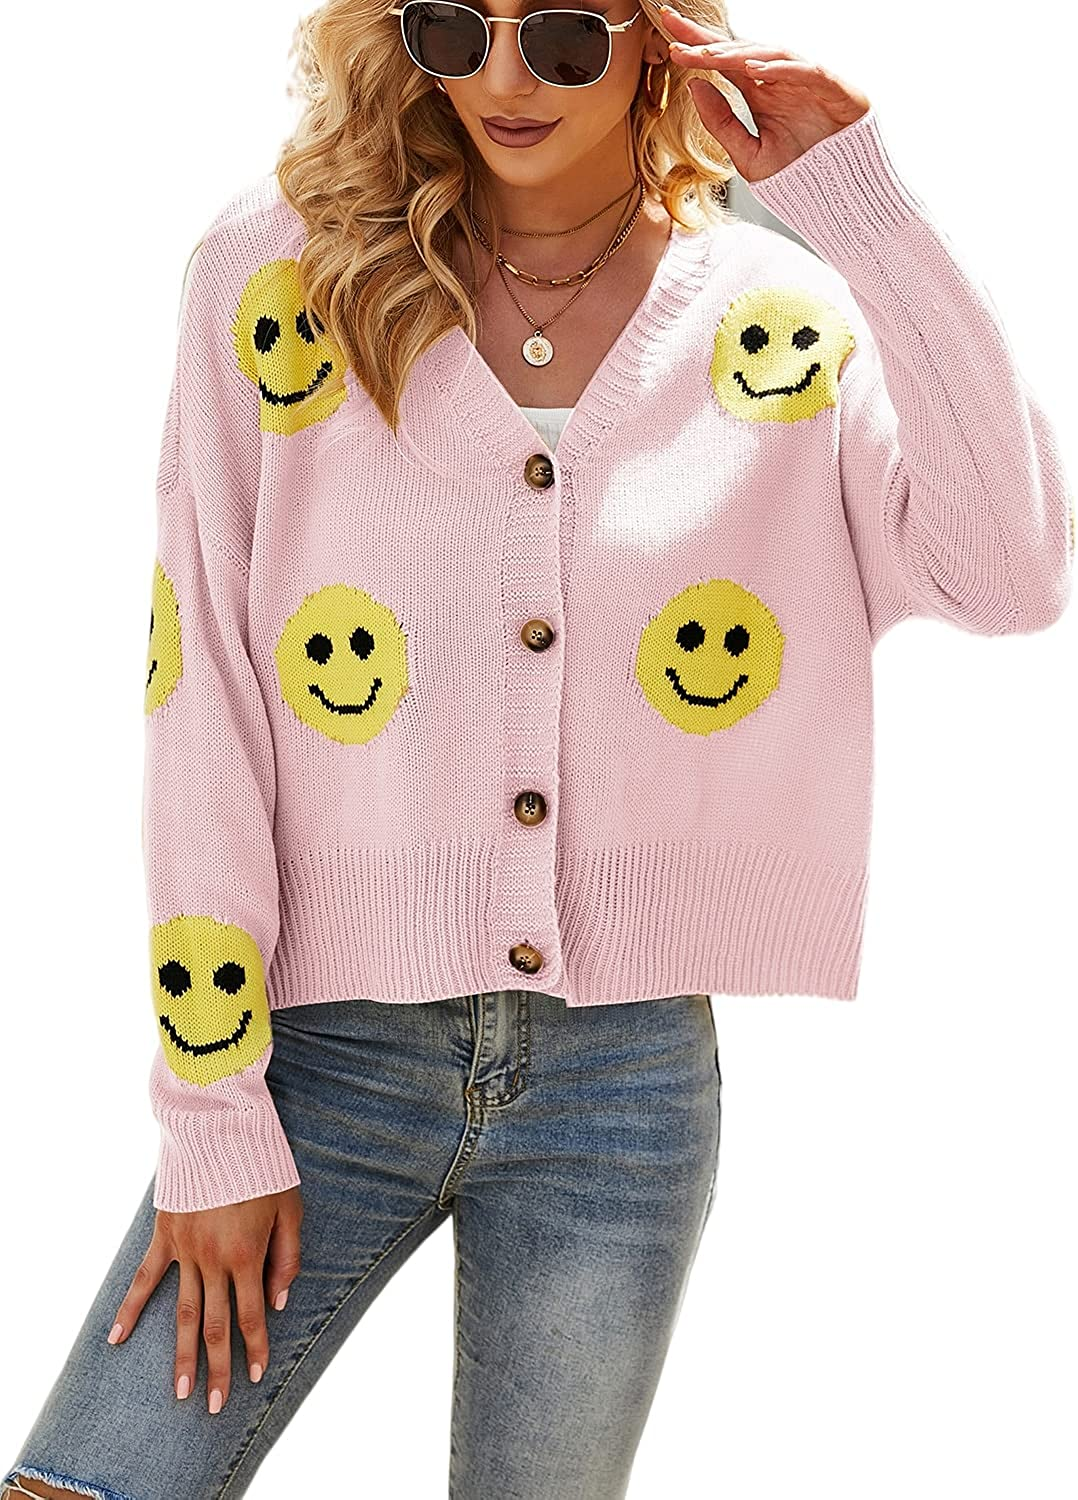 Eteviolet Y2K Flower Pattern Knitted Sweater for Women V-Neck Button Down Loose Knit Cardigan Sweater